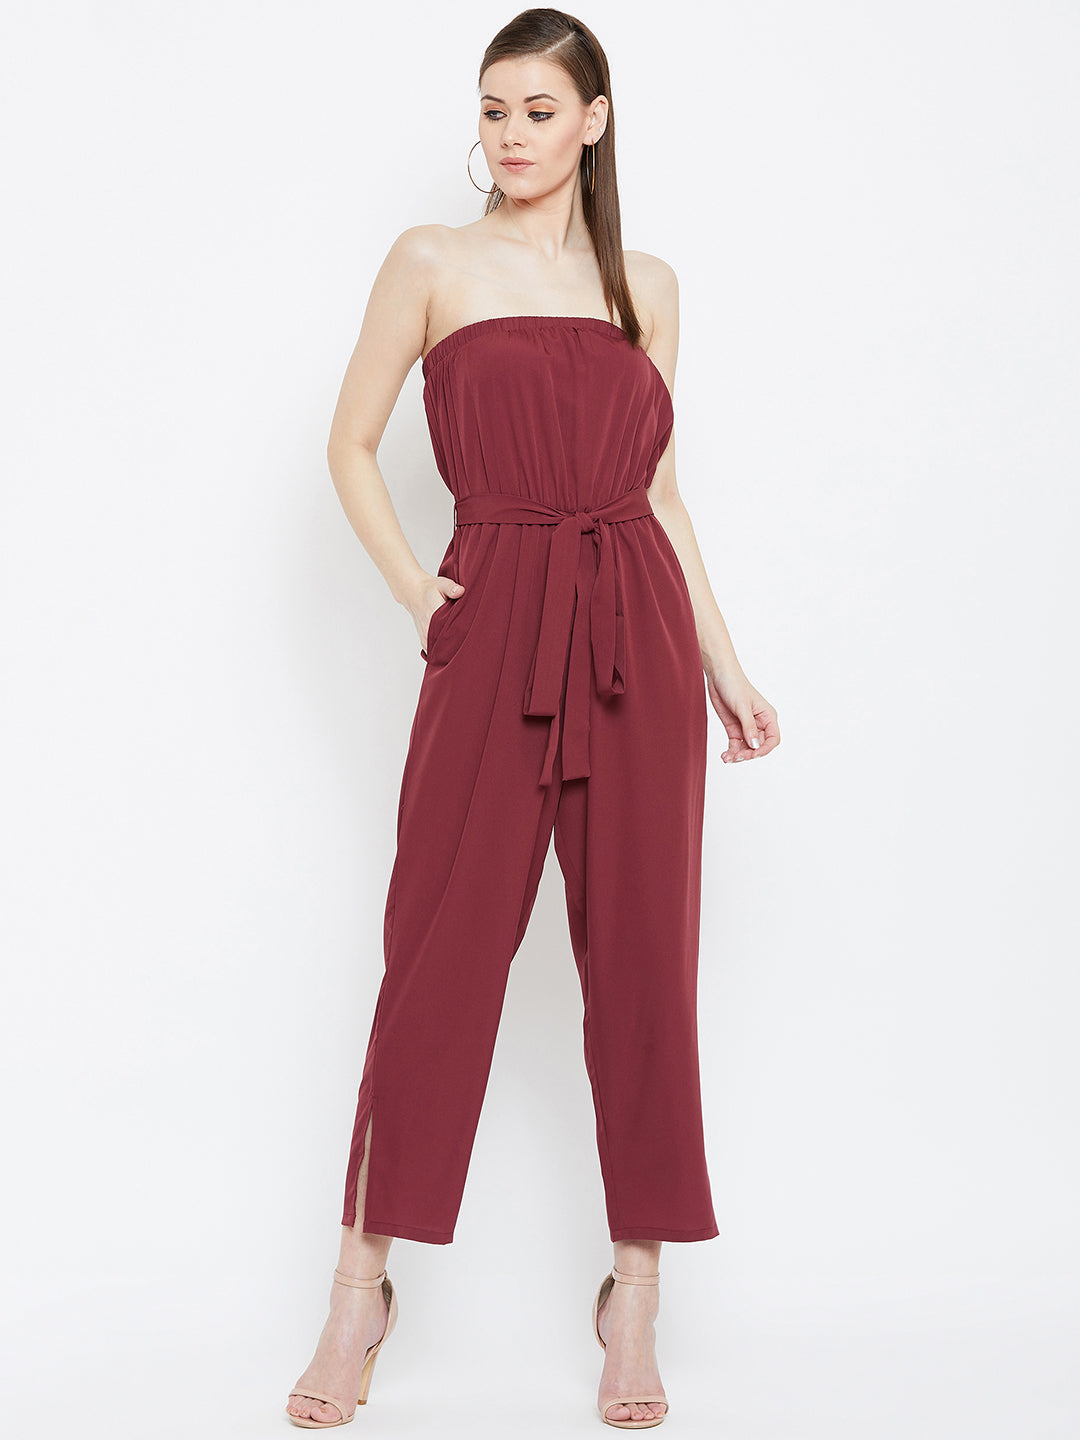 off shoulder maroon  jumpsuit with tie-knot waist